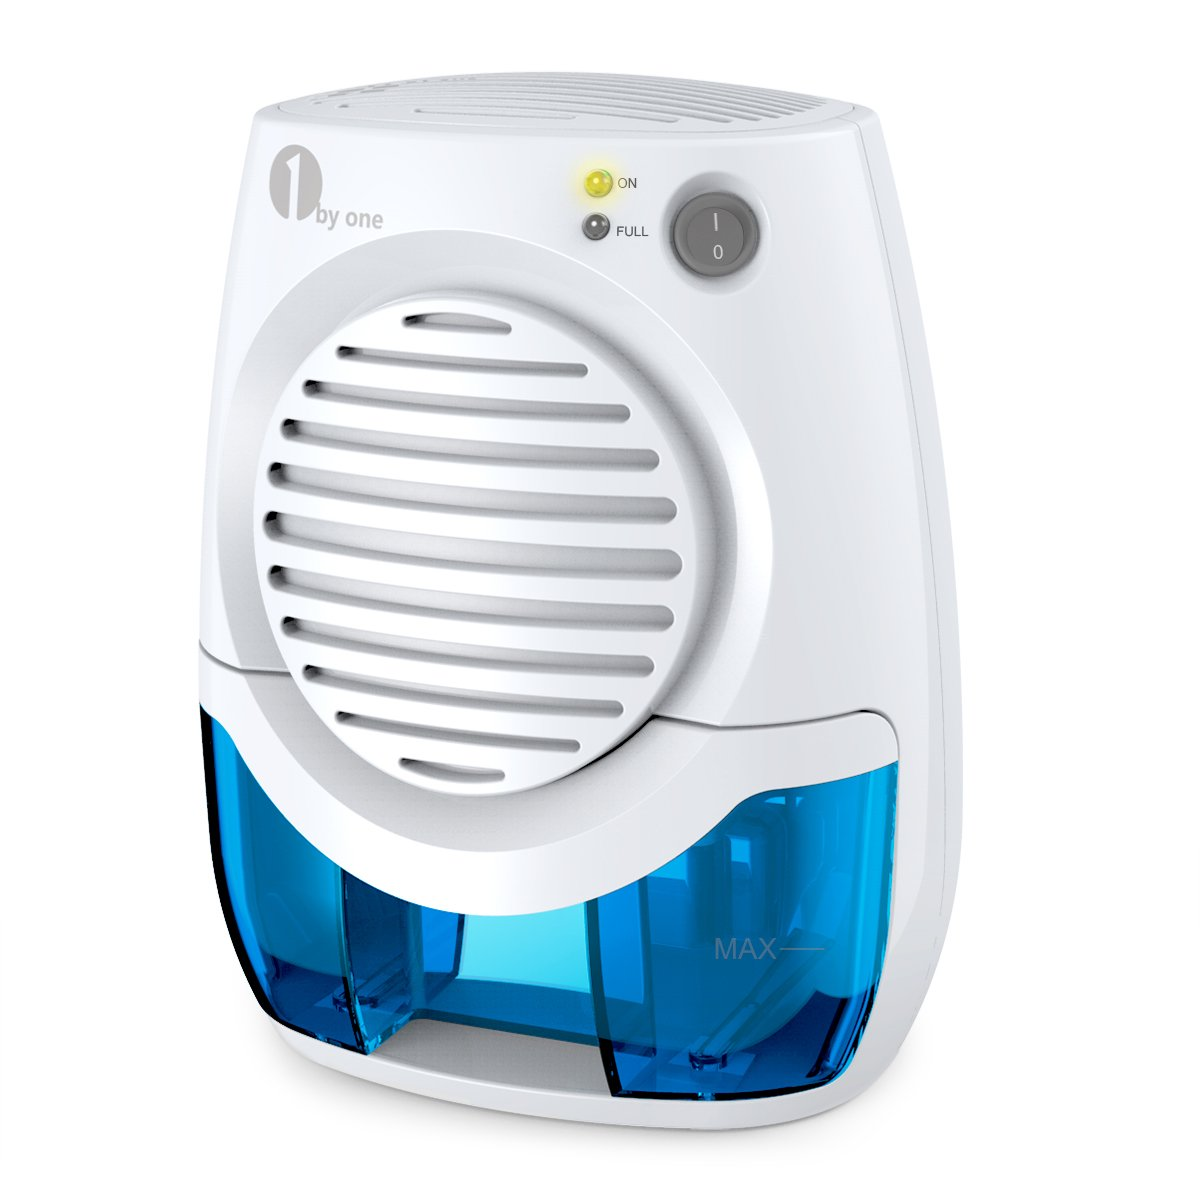 1byone 400ml Electric Mini Dehumidifier, Compact and Portable for Damp Air, Mold, Moisture in Home, Kitchen, Bedroom, Basement, Caravan, Office, Garage - Auto Shut Off by 1byone